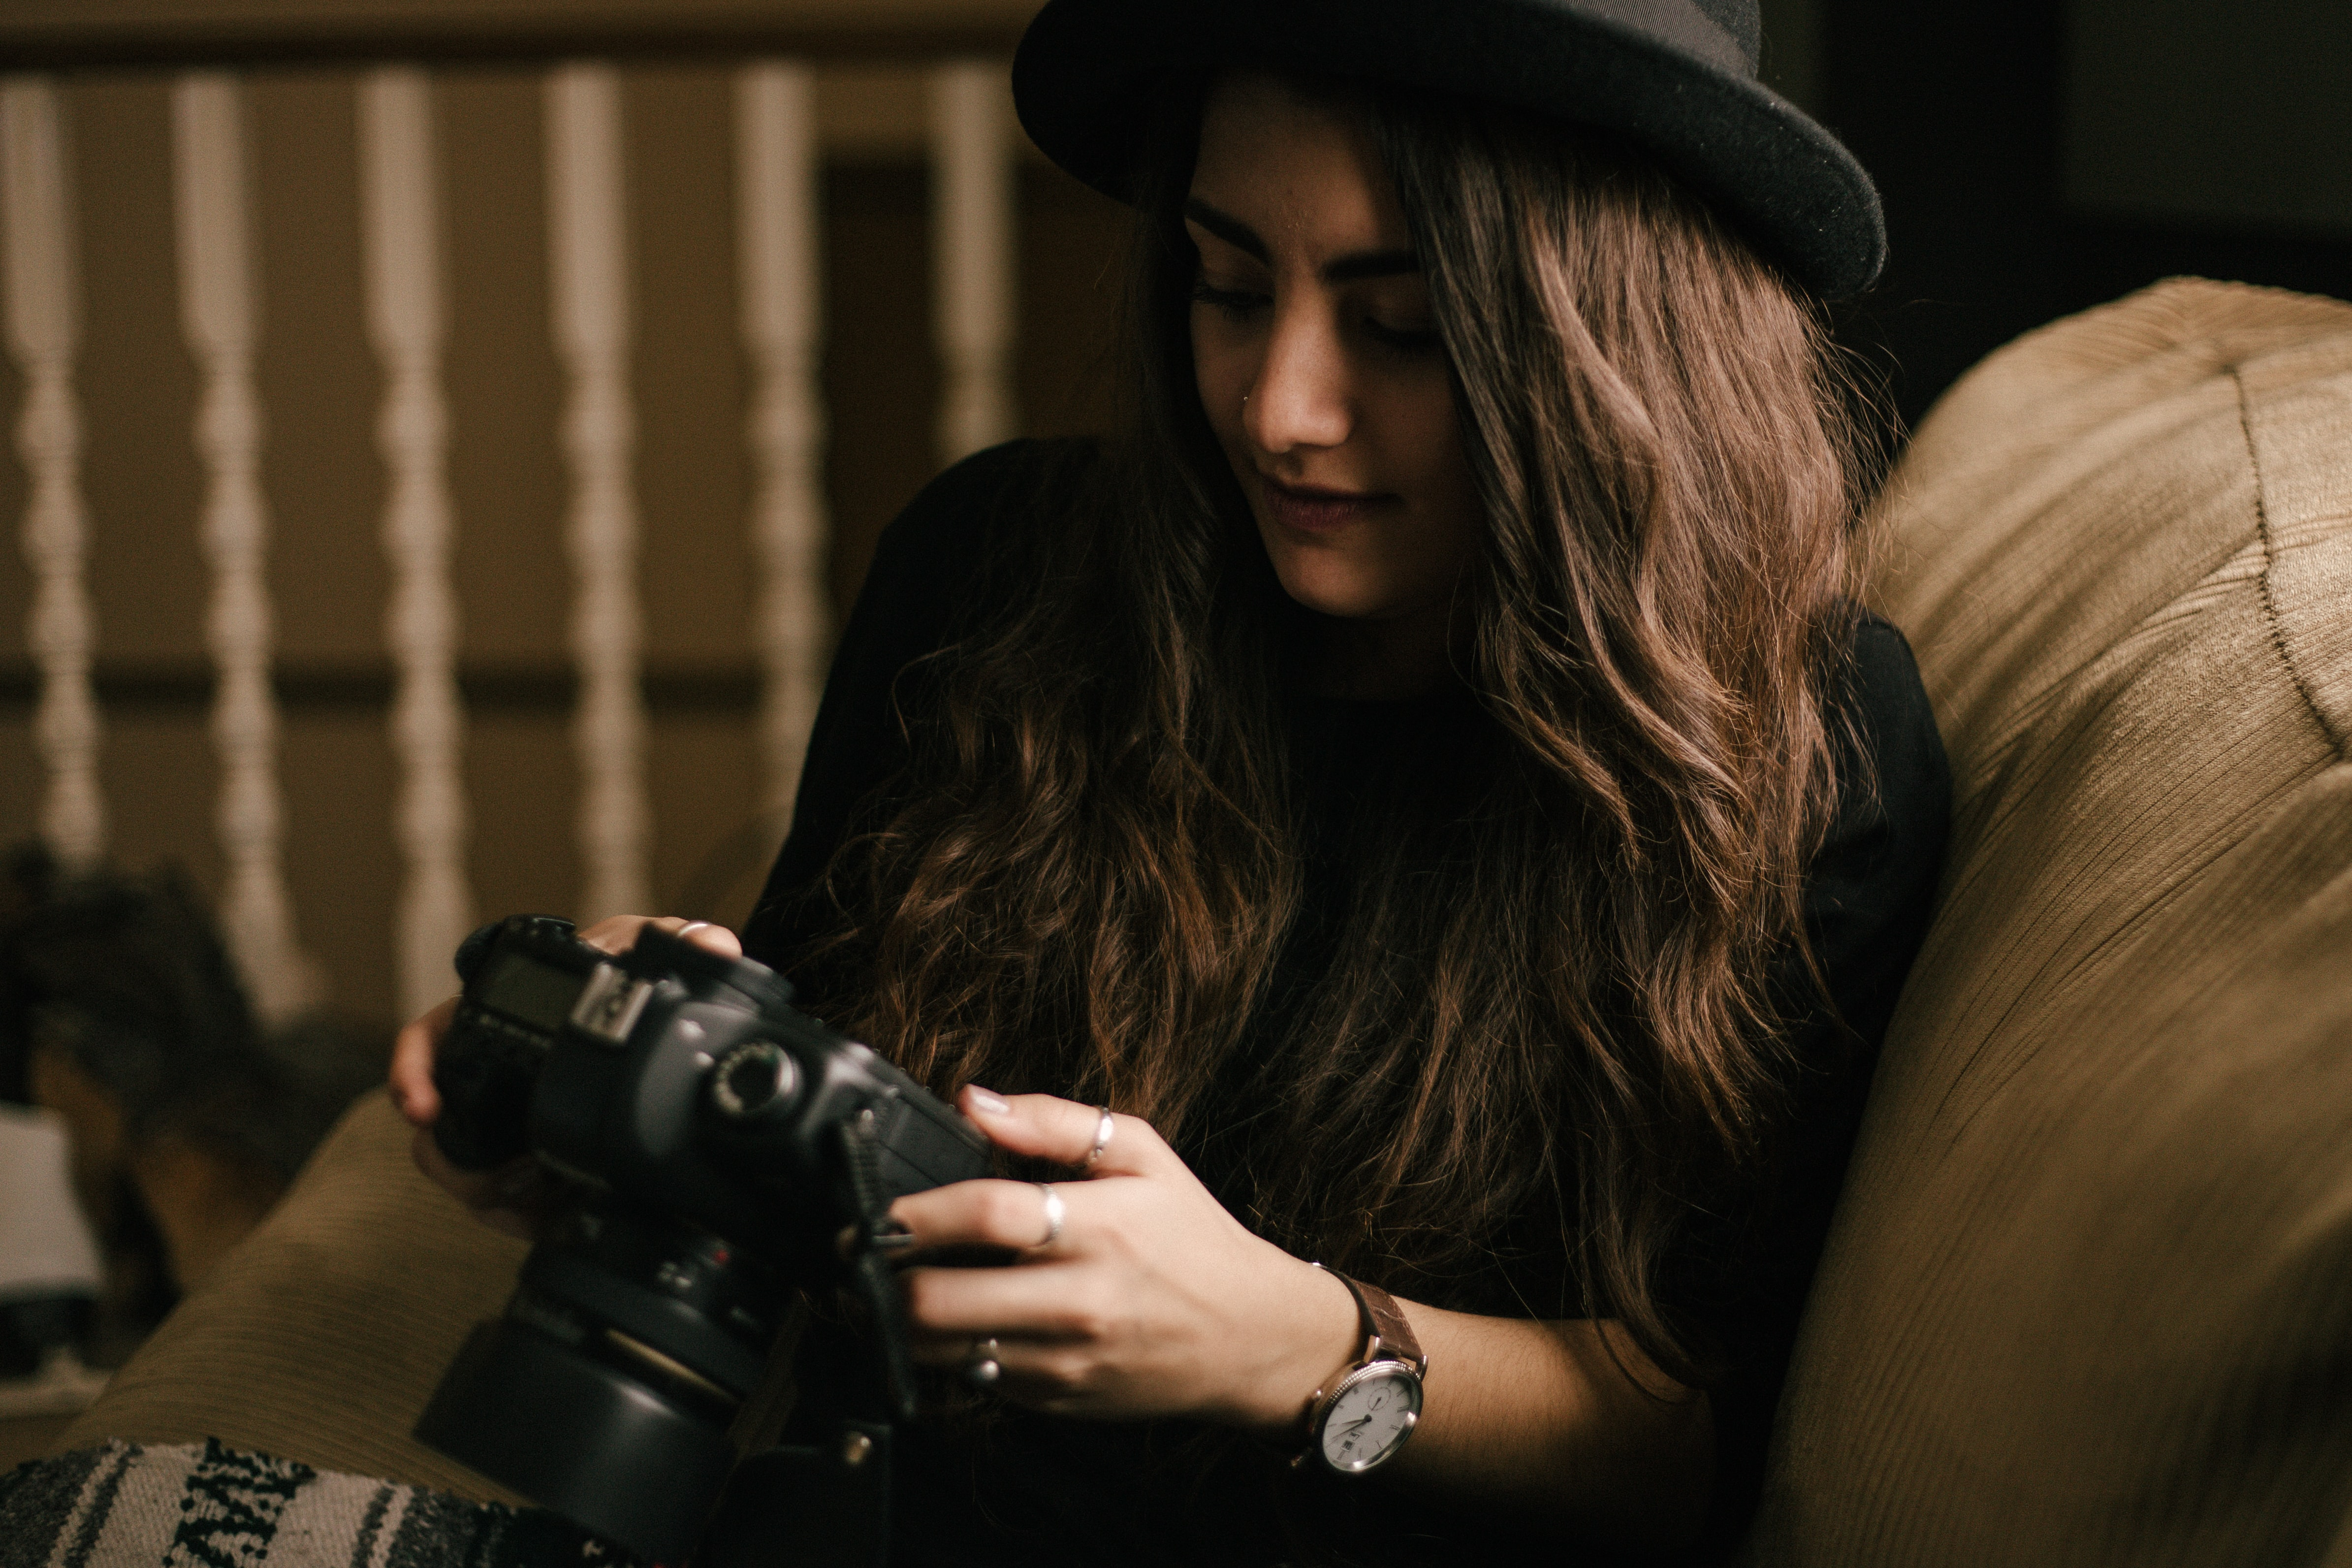 A young woman looking at the screen of a digital long-lens camera